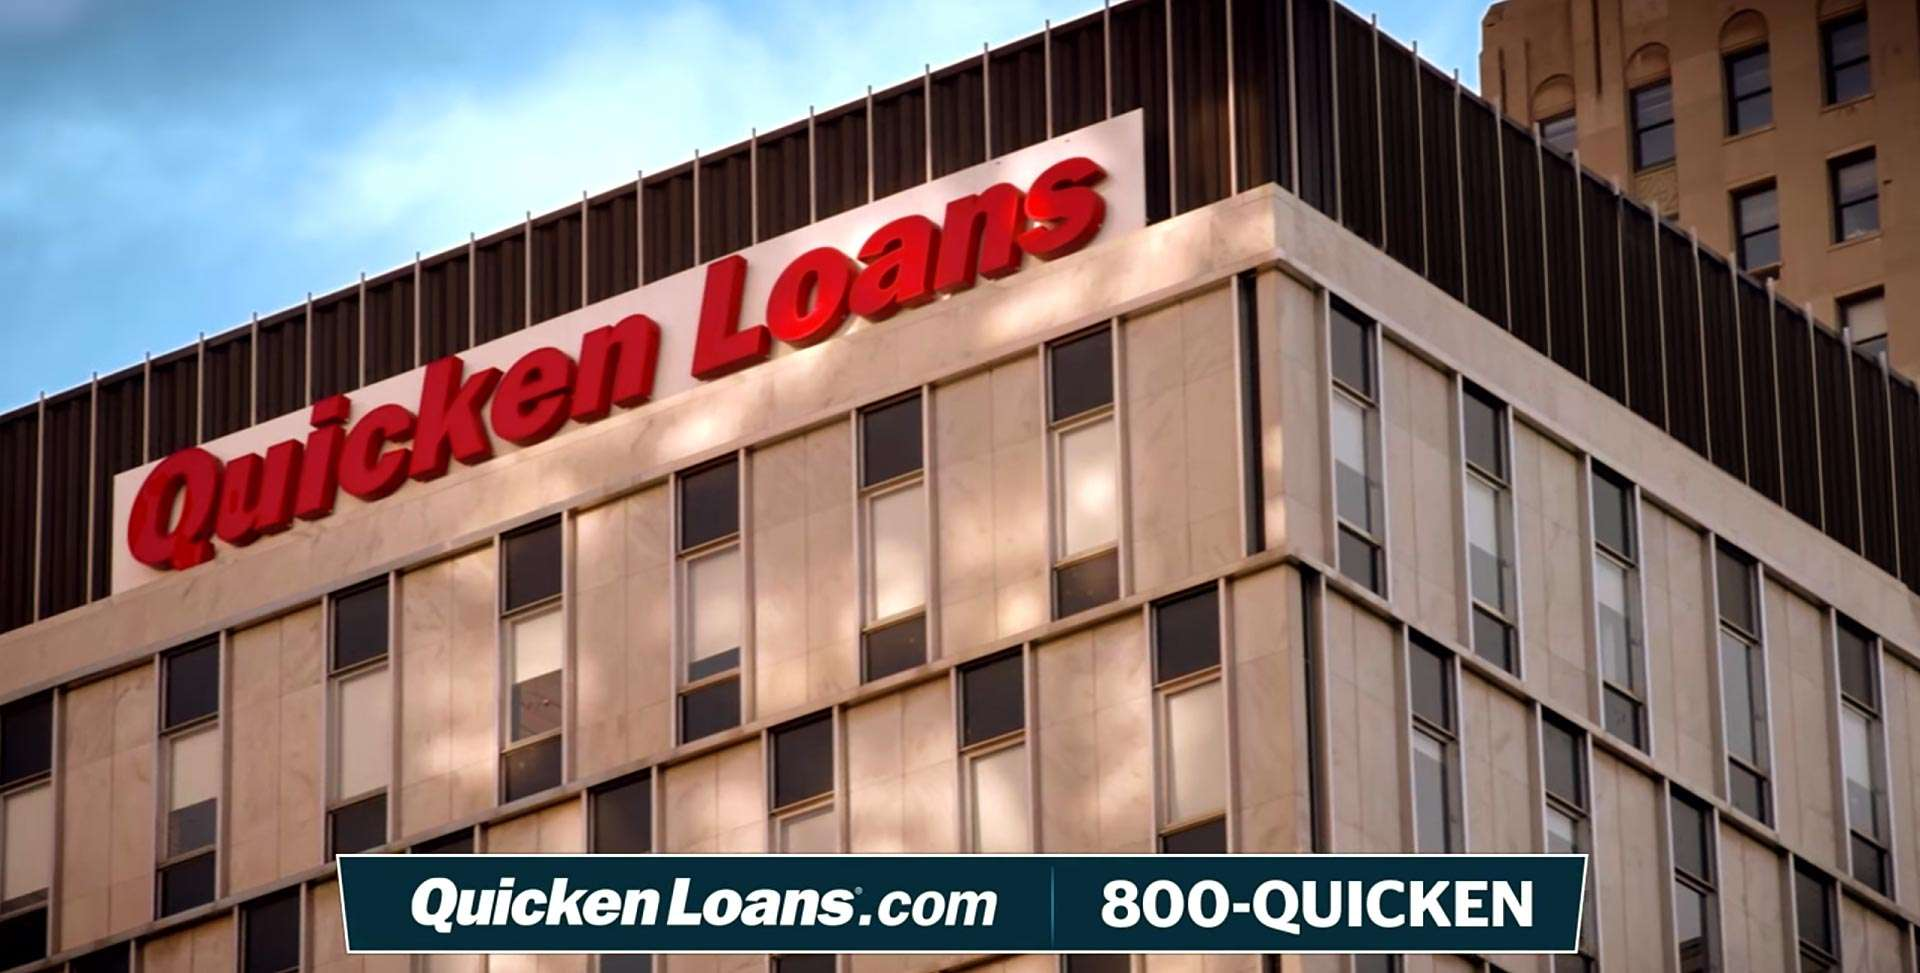 Quicken Loans Commercials